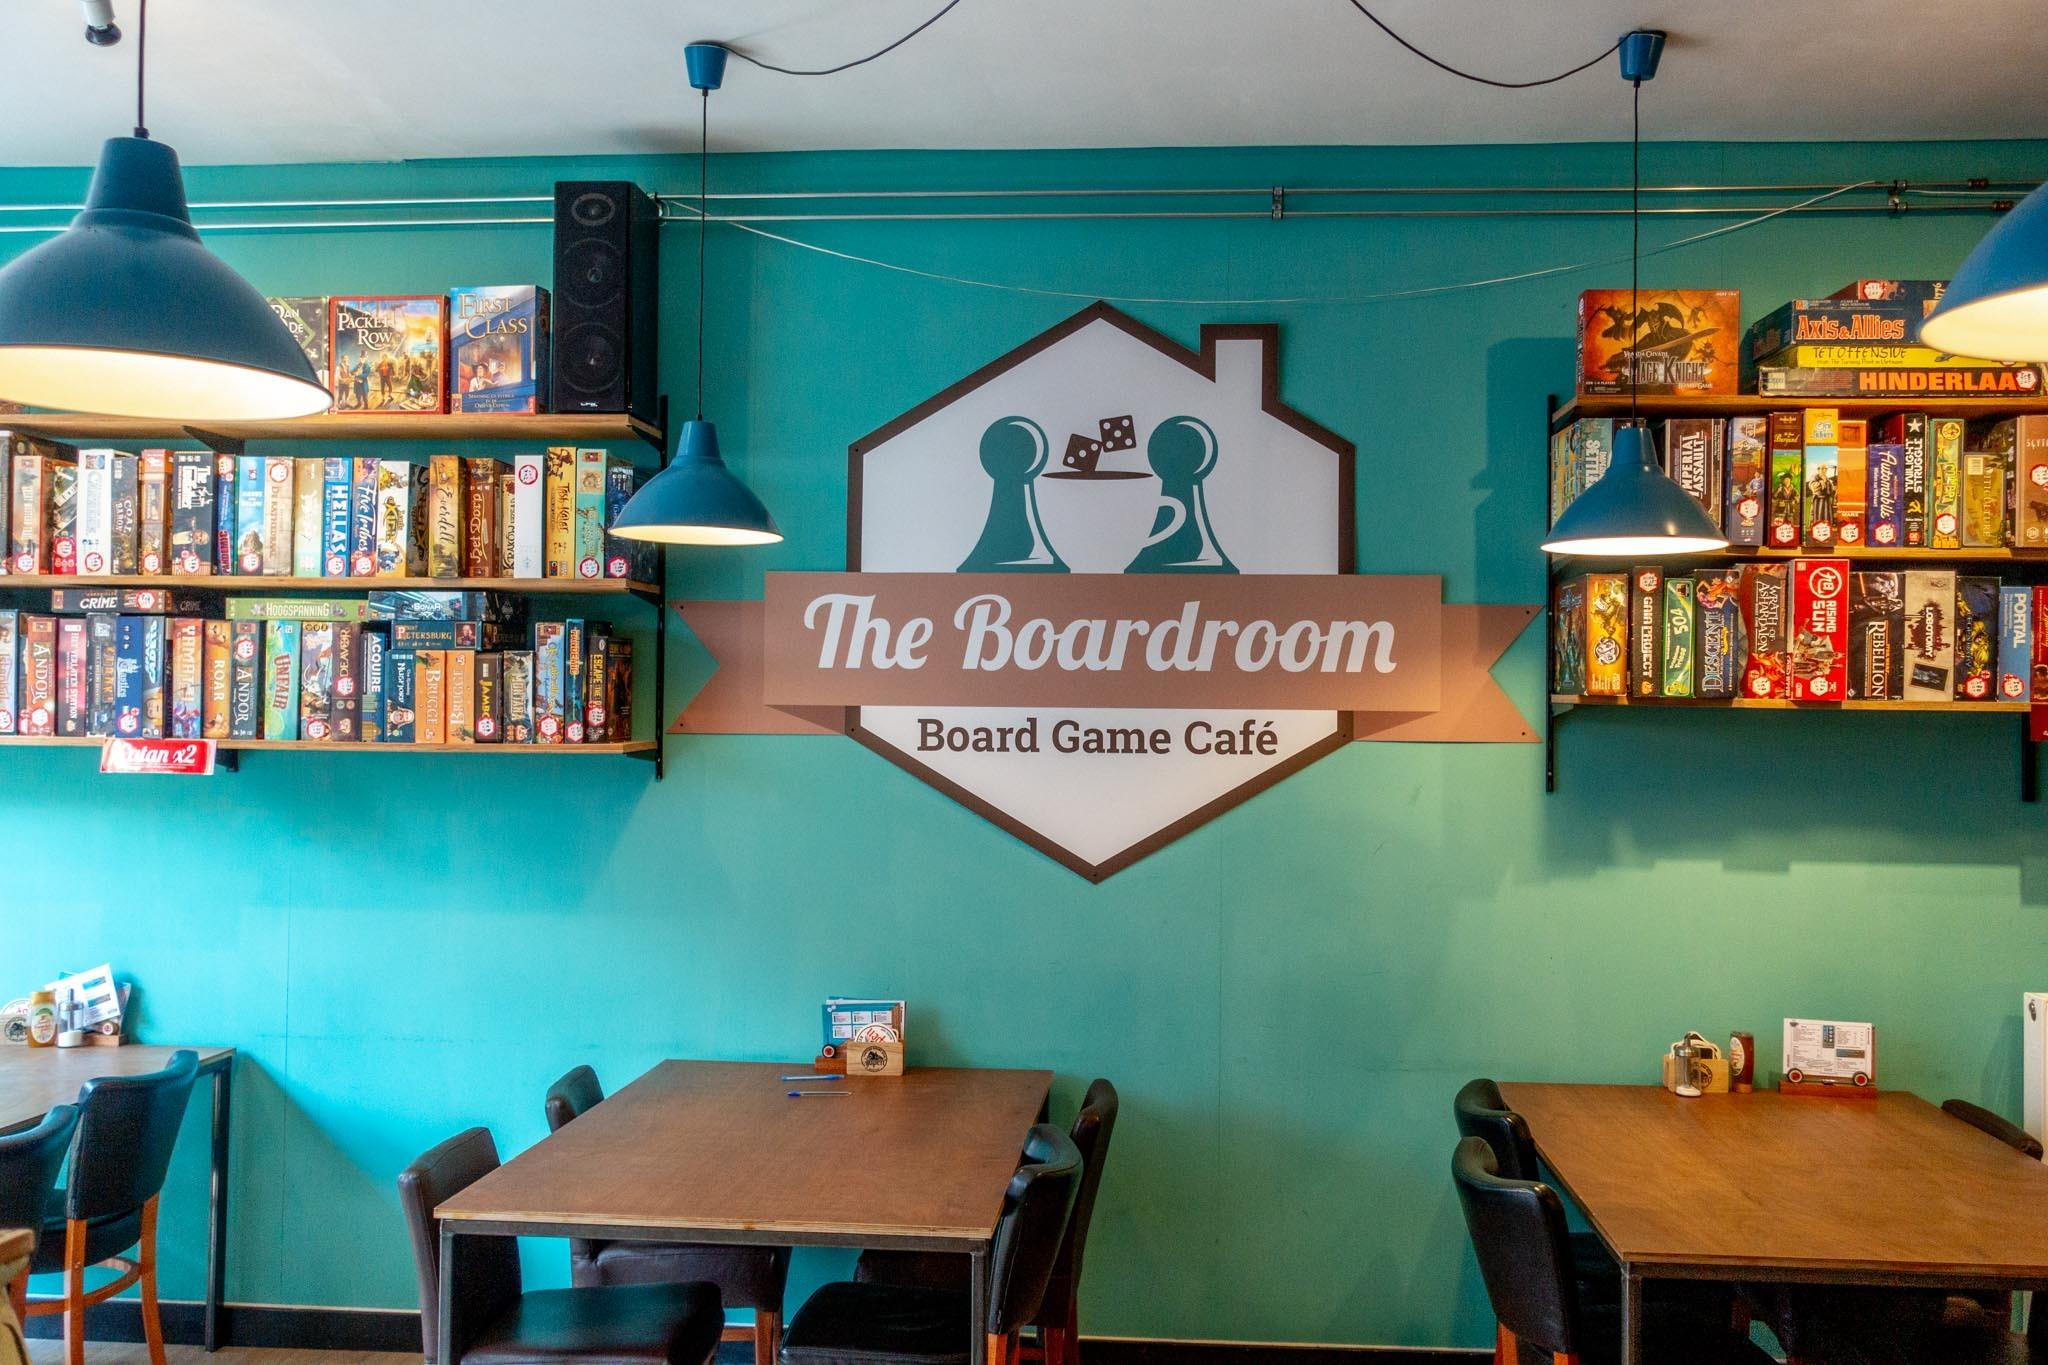 Interior of the Boardroom Cafe with tables, chairs, and boardgames on shelves on the wall